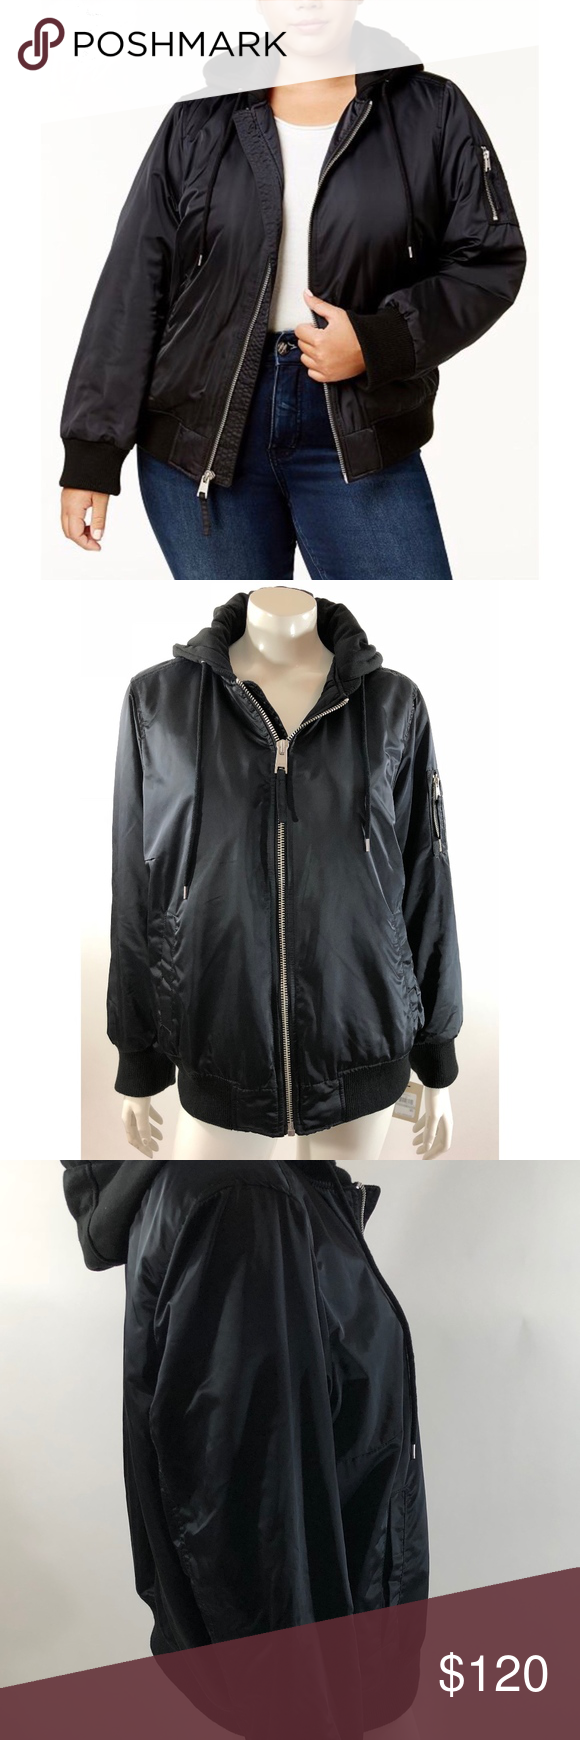 30b85b3b00d Levis Womens Satin Bomber Jacket Plus Sz 1X Black Levis Womens Satin Bomber  Jacket Plus Size 1X Black Zip Up Hooded Coat New Measurements  (in inches)  ...